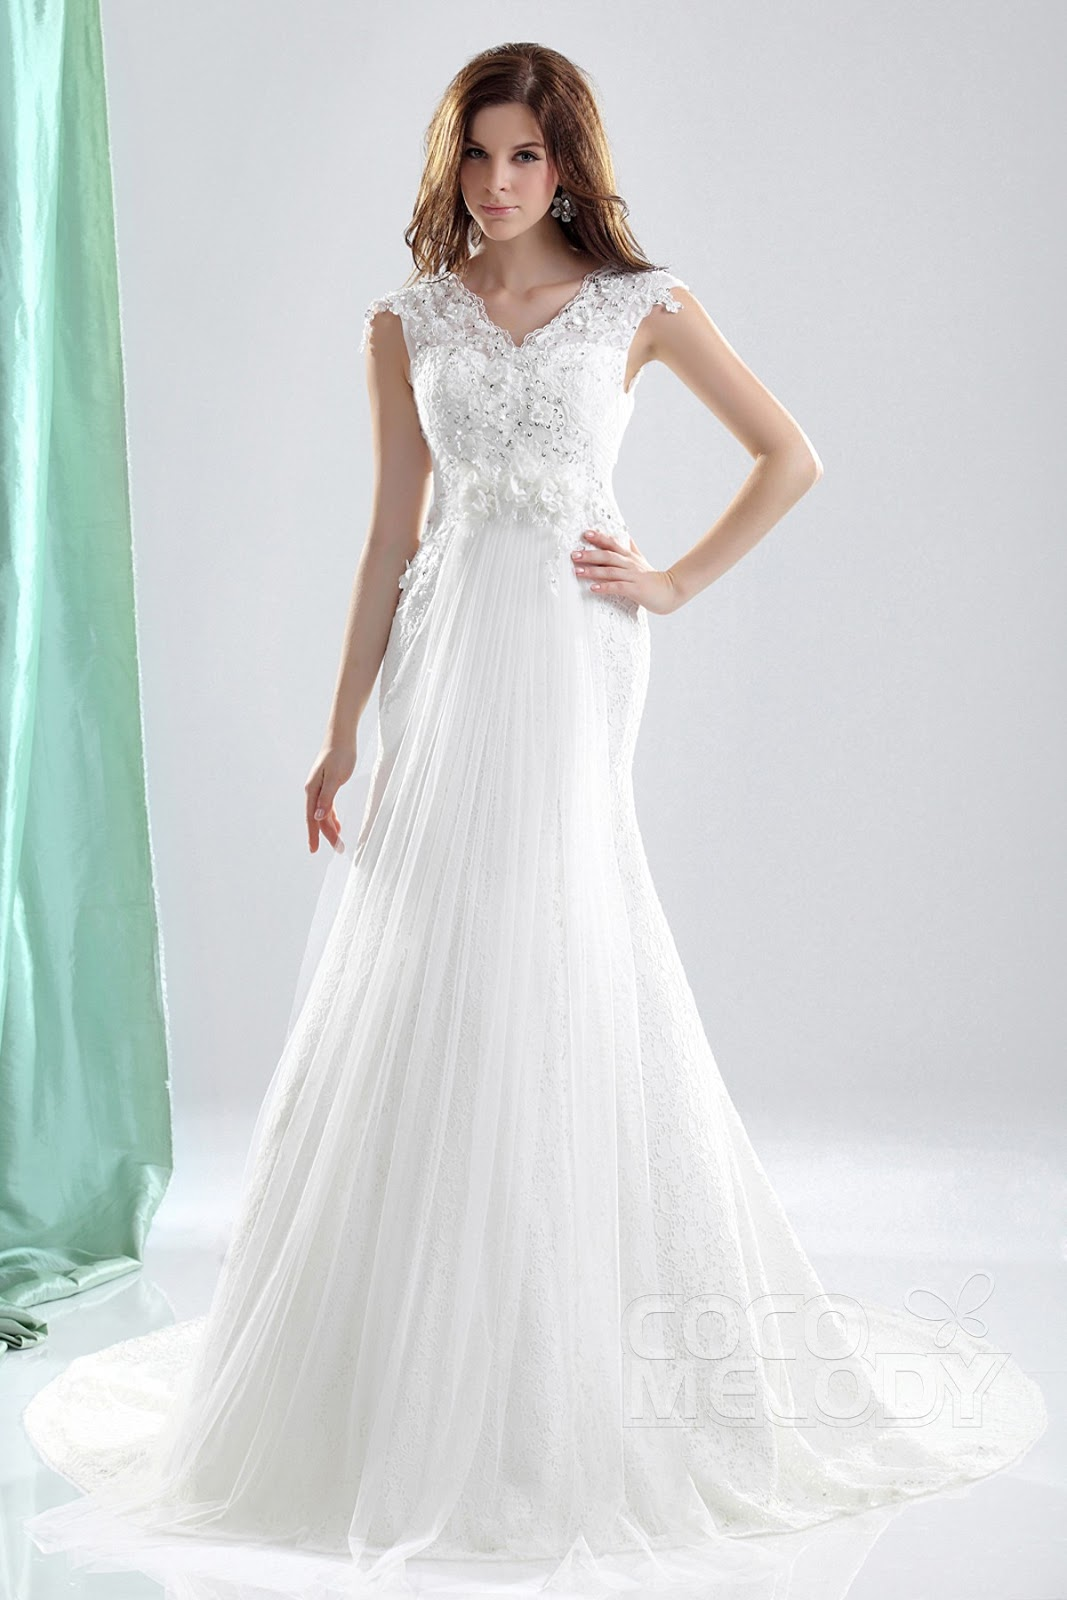 2013 the most beautiful wedding dress: Very simple straight wedding ...